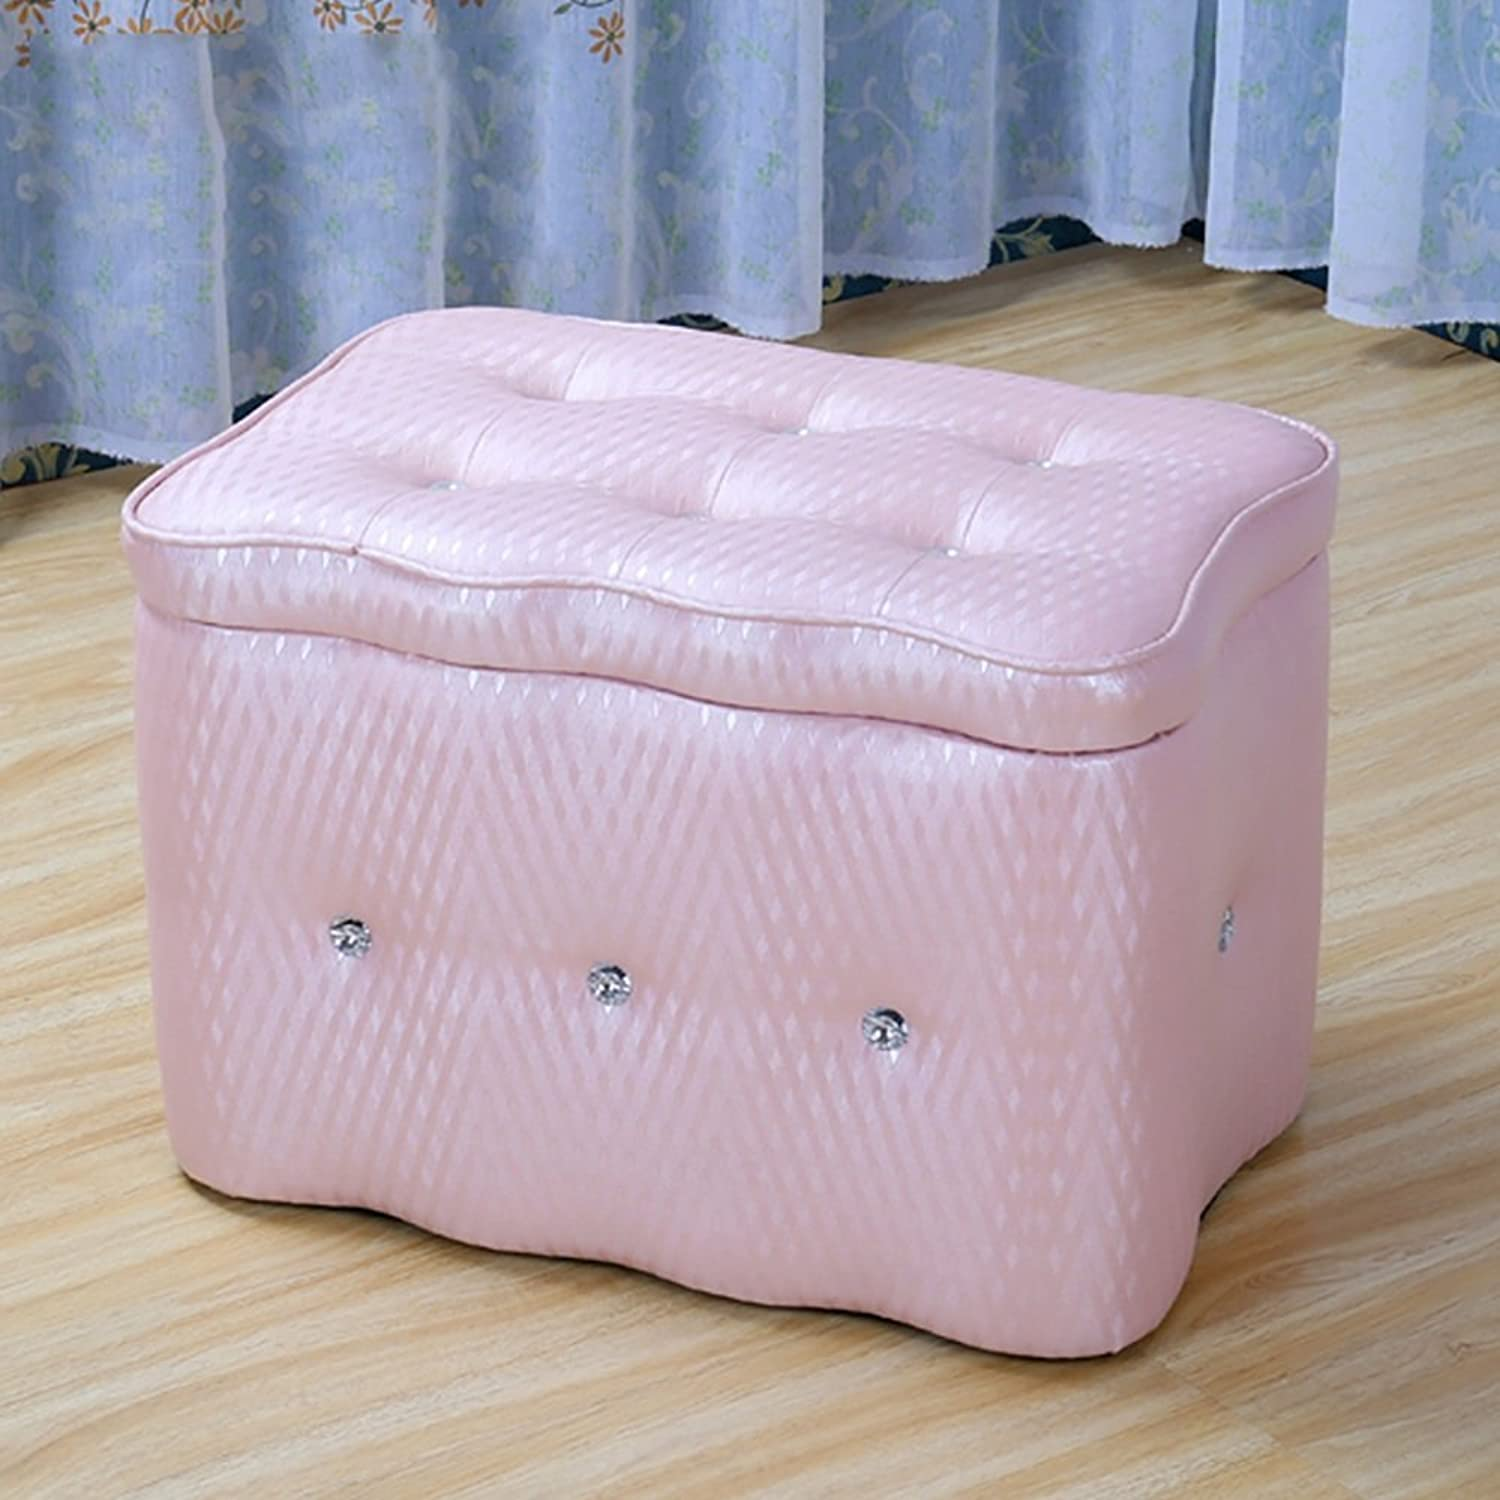 LJHA ertongcanyi Creative colord Footstool Hall Changing His shoes Stool shoes Store Storage Box Rectangular Solid Wood Sofa Stool (color   Pink, Size   50  30  32cm)